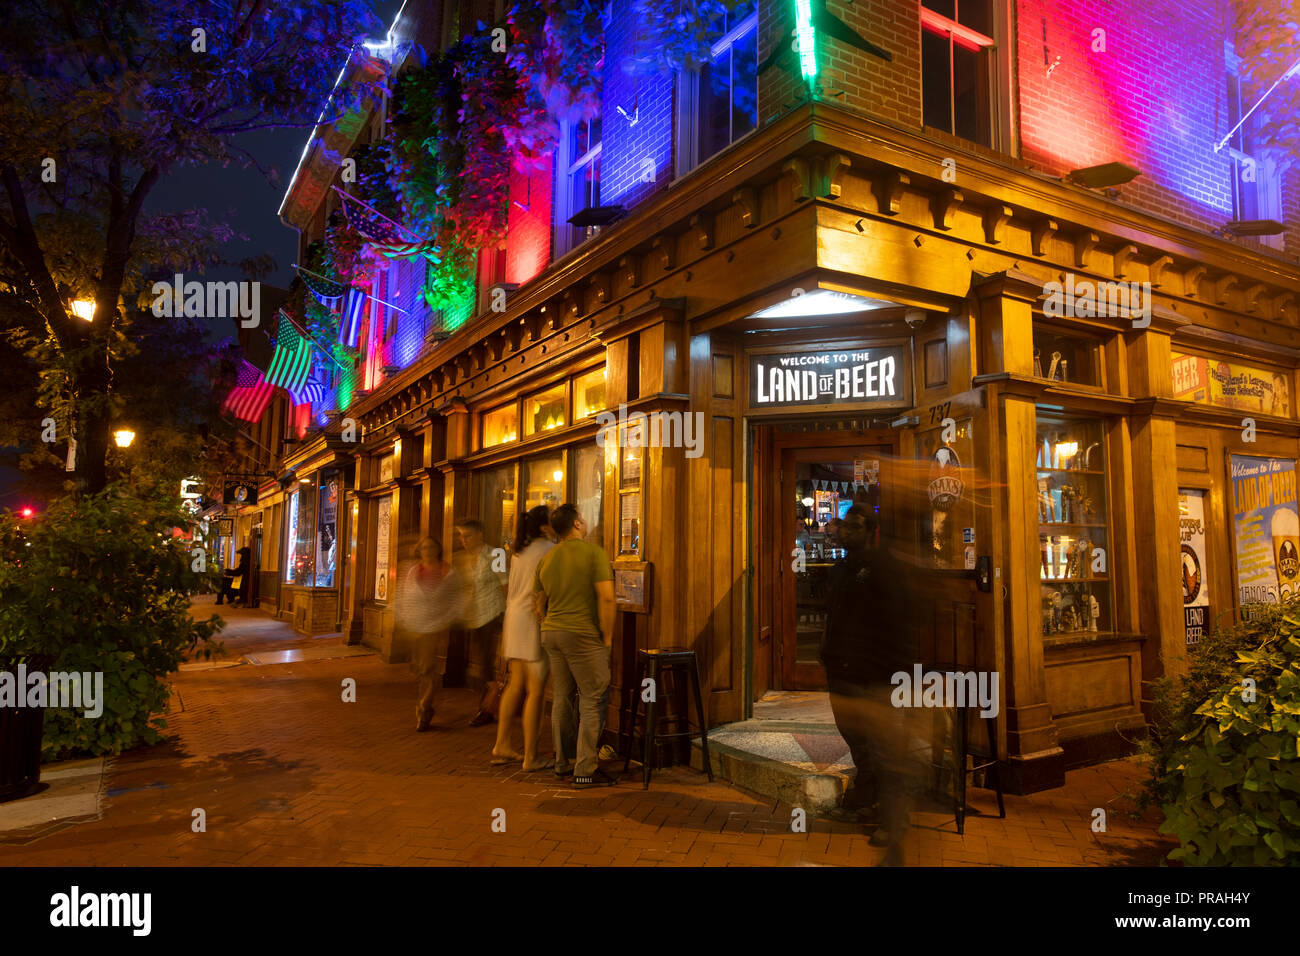 USA Maryland Baltimore Fells Point Maxs on Broadway Land of Beer bar tavern pub nightlife - Stock Image